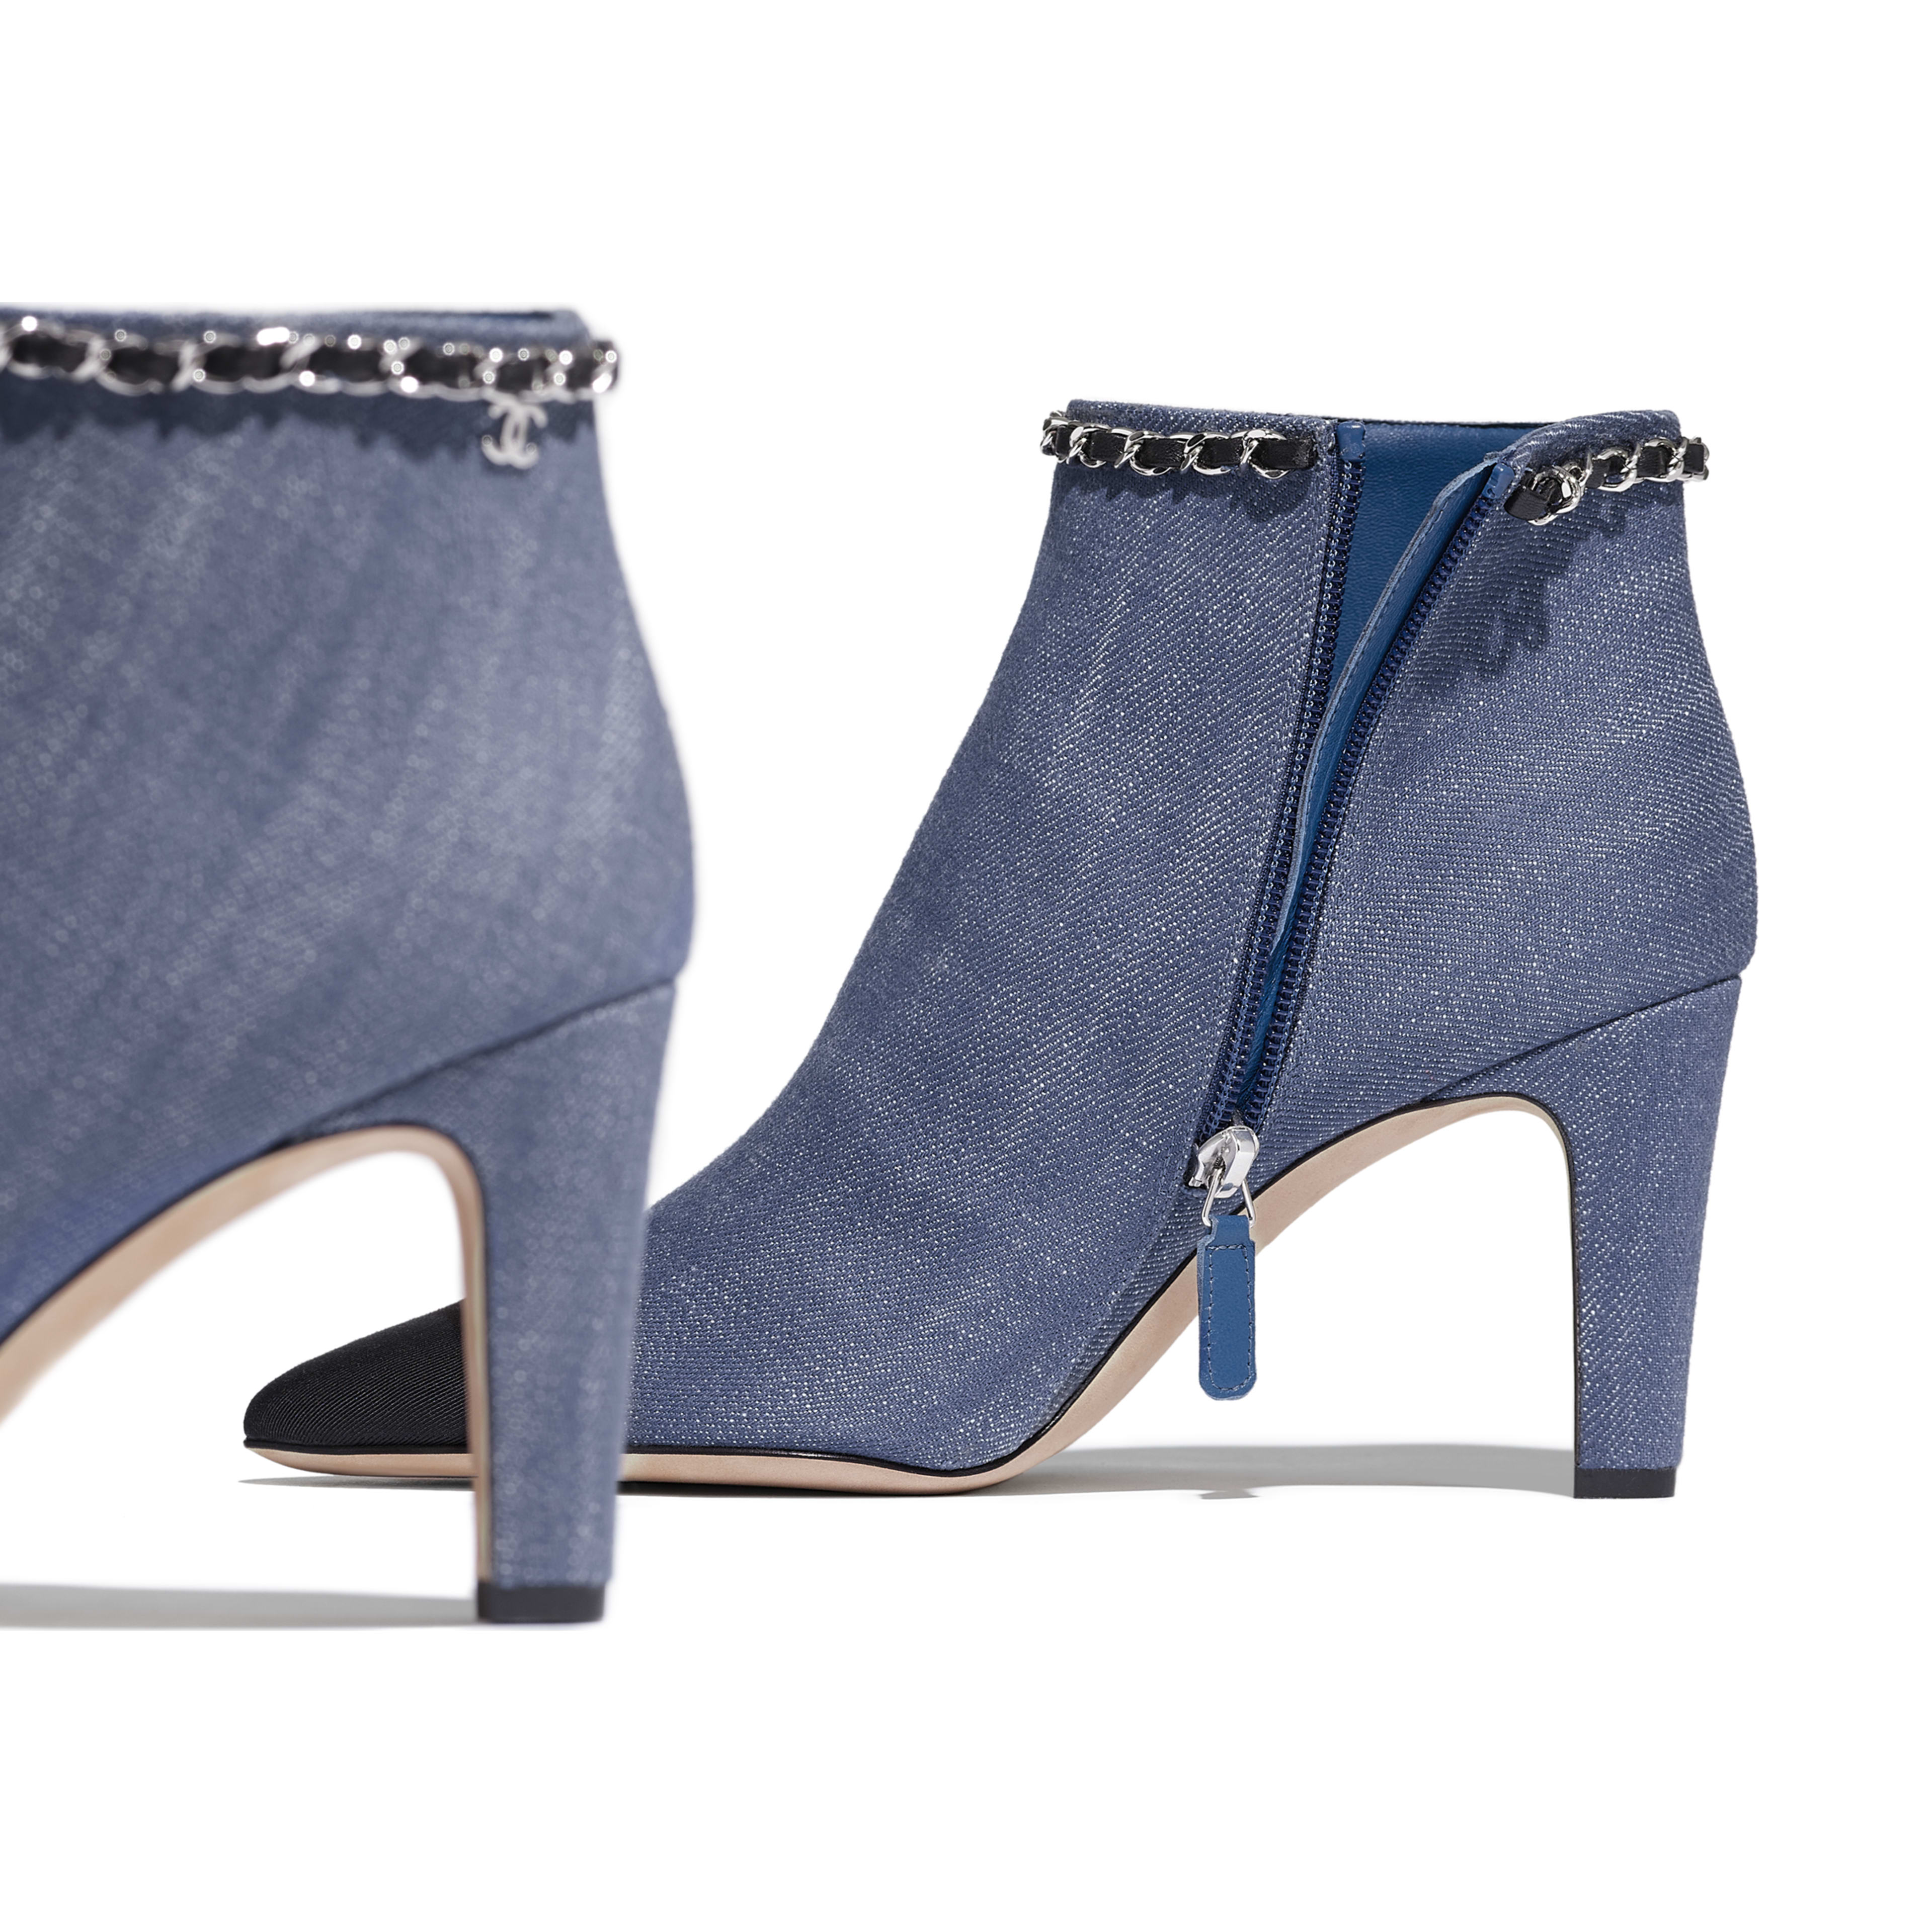 Ankle Boots - Blue & Black - Fabric - Extra view - see full sized version